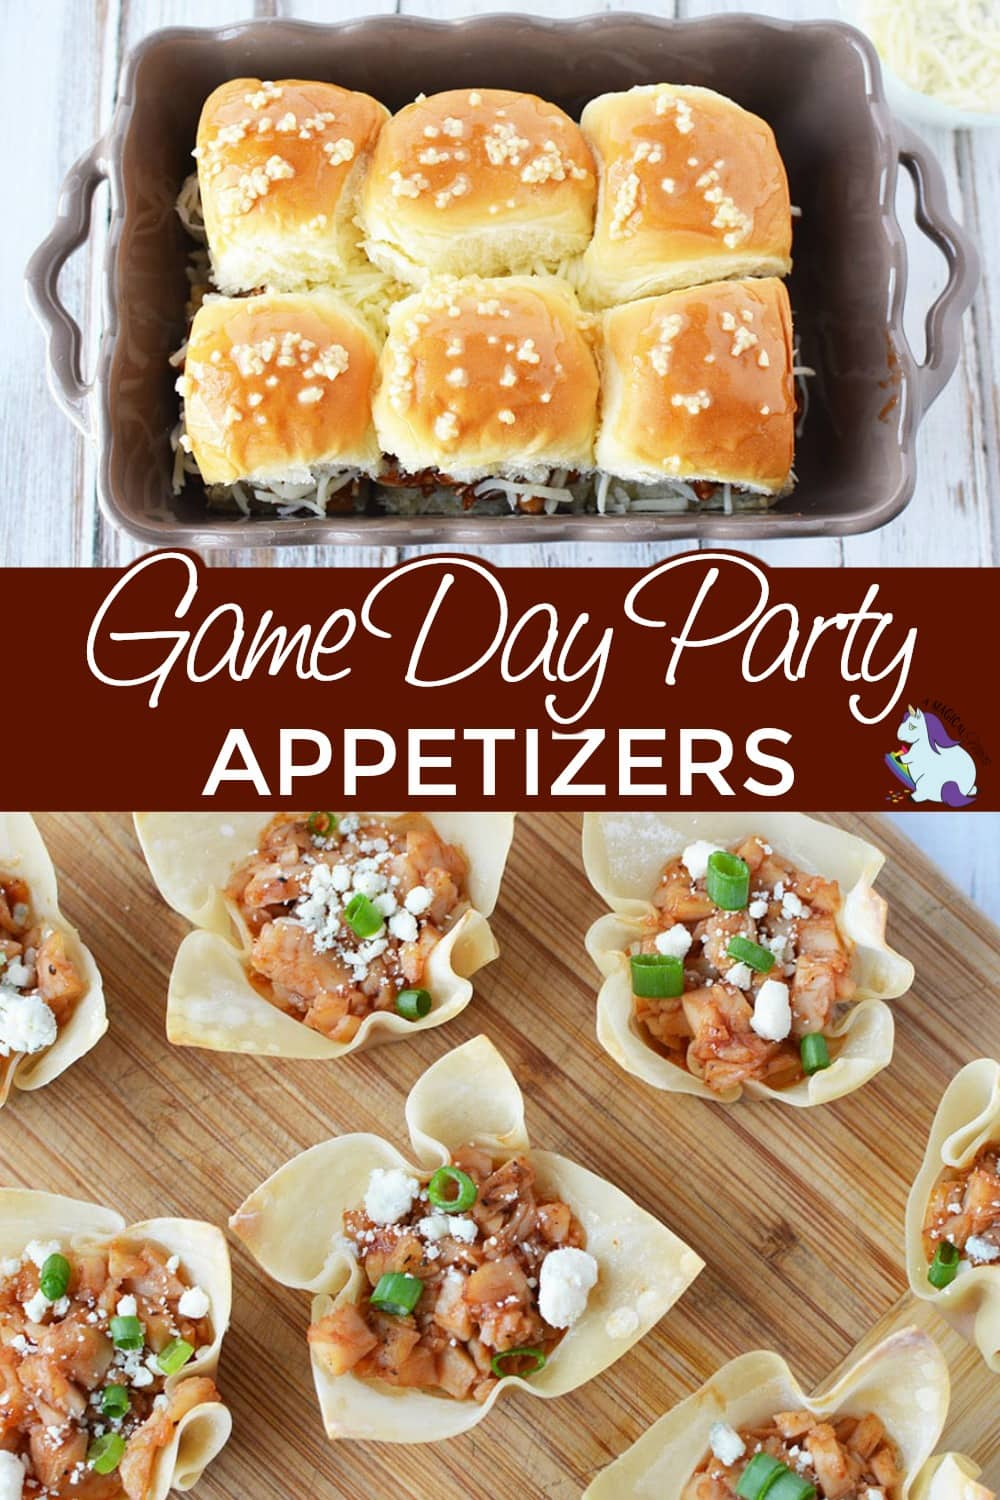 Sliders and bites that are great for game day snacks.